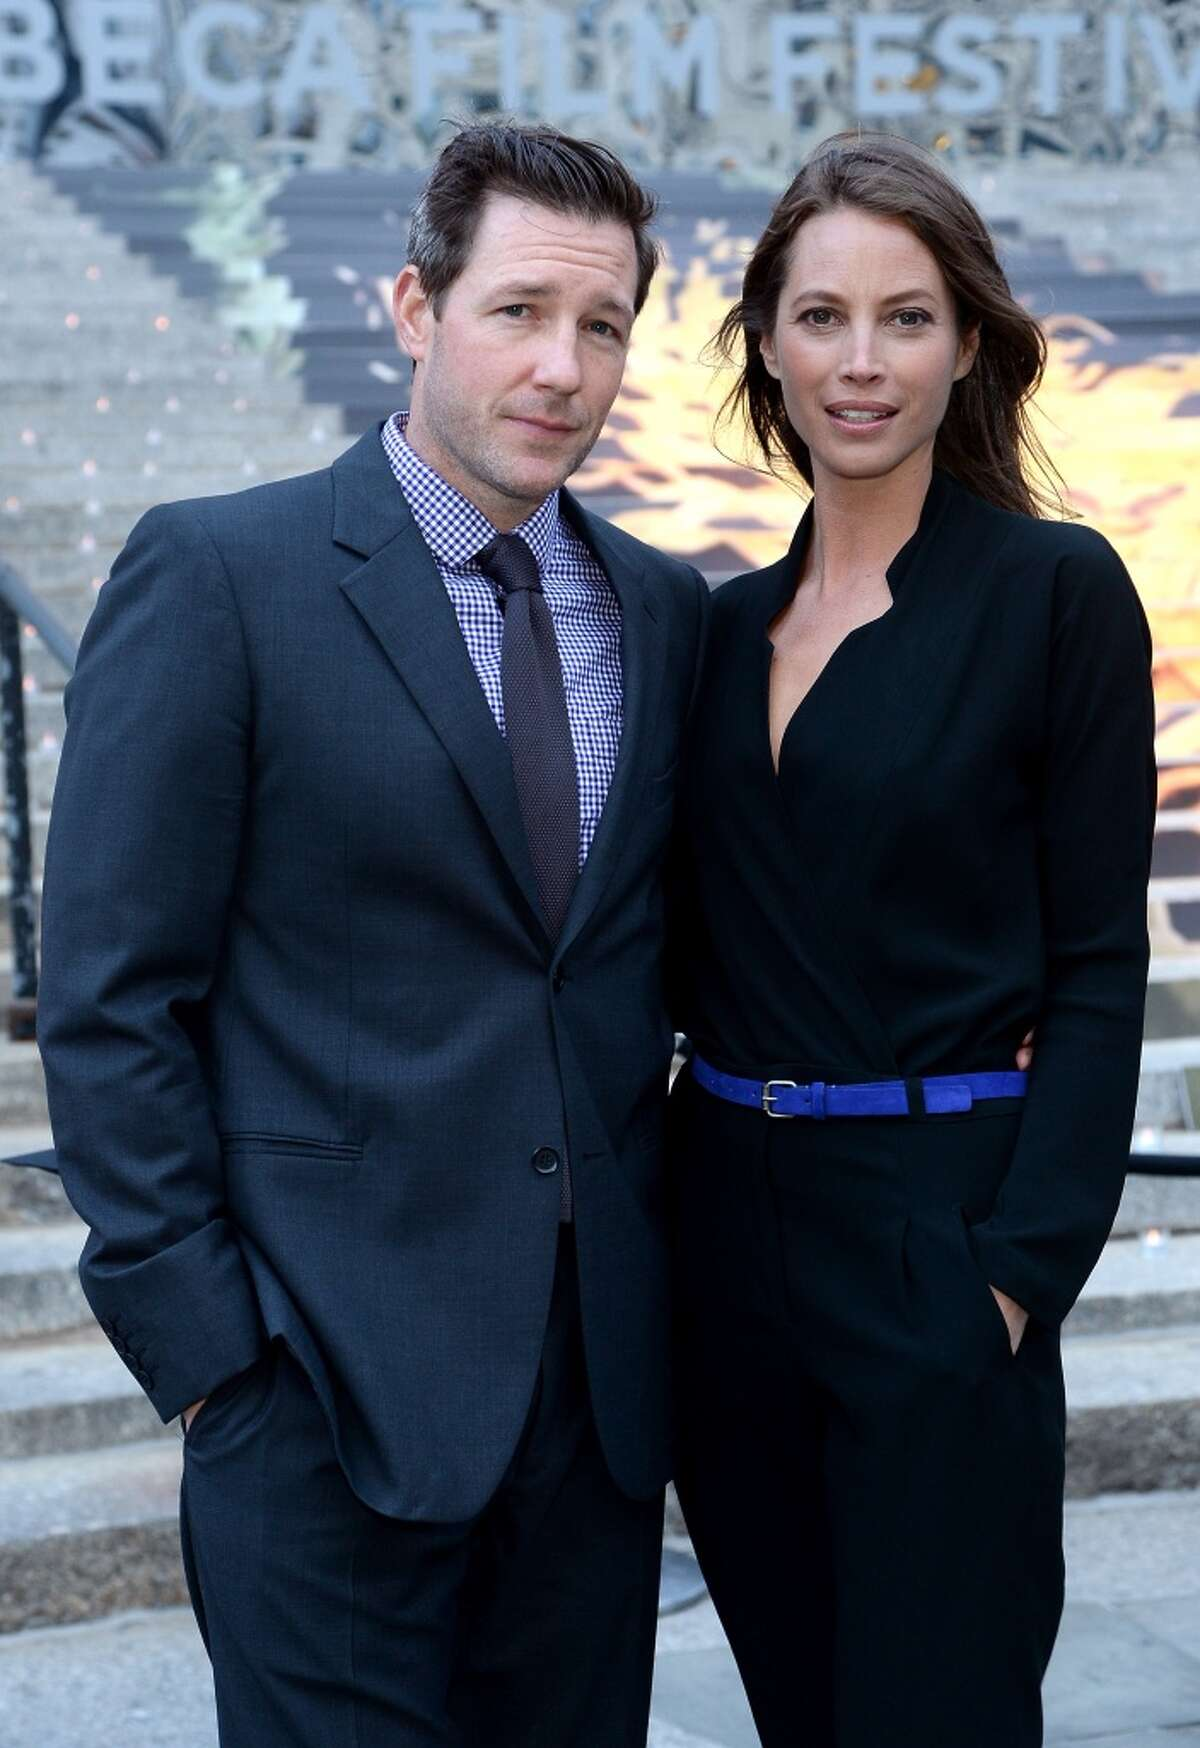 Supermodel Christy Turlington met actor Edwards Burns in 2000. The couple married on June 7, 2003 in St. Peter and Paul's Catholic Church in San Francisco.